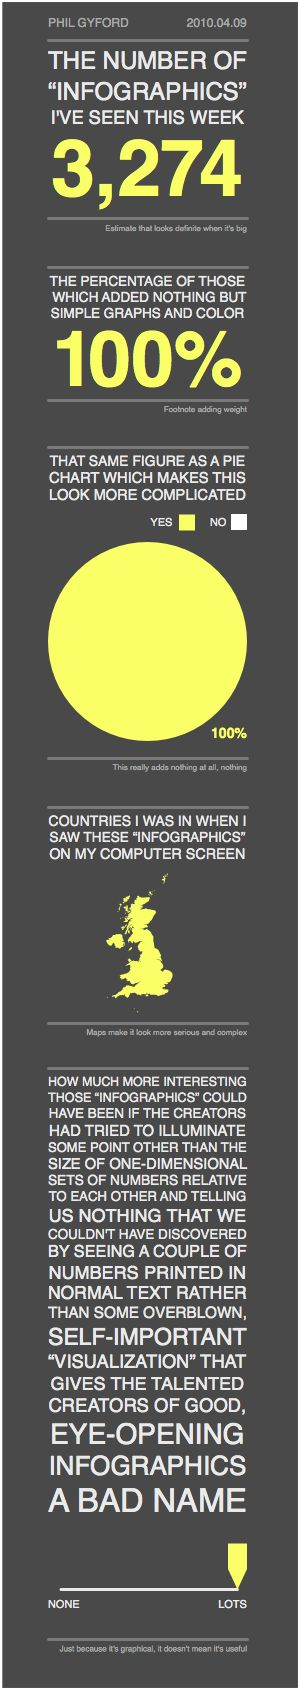 LOL-An infographic on the number of infographics I've seen this week. Love It